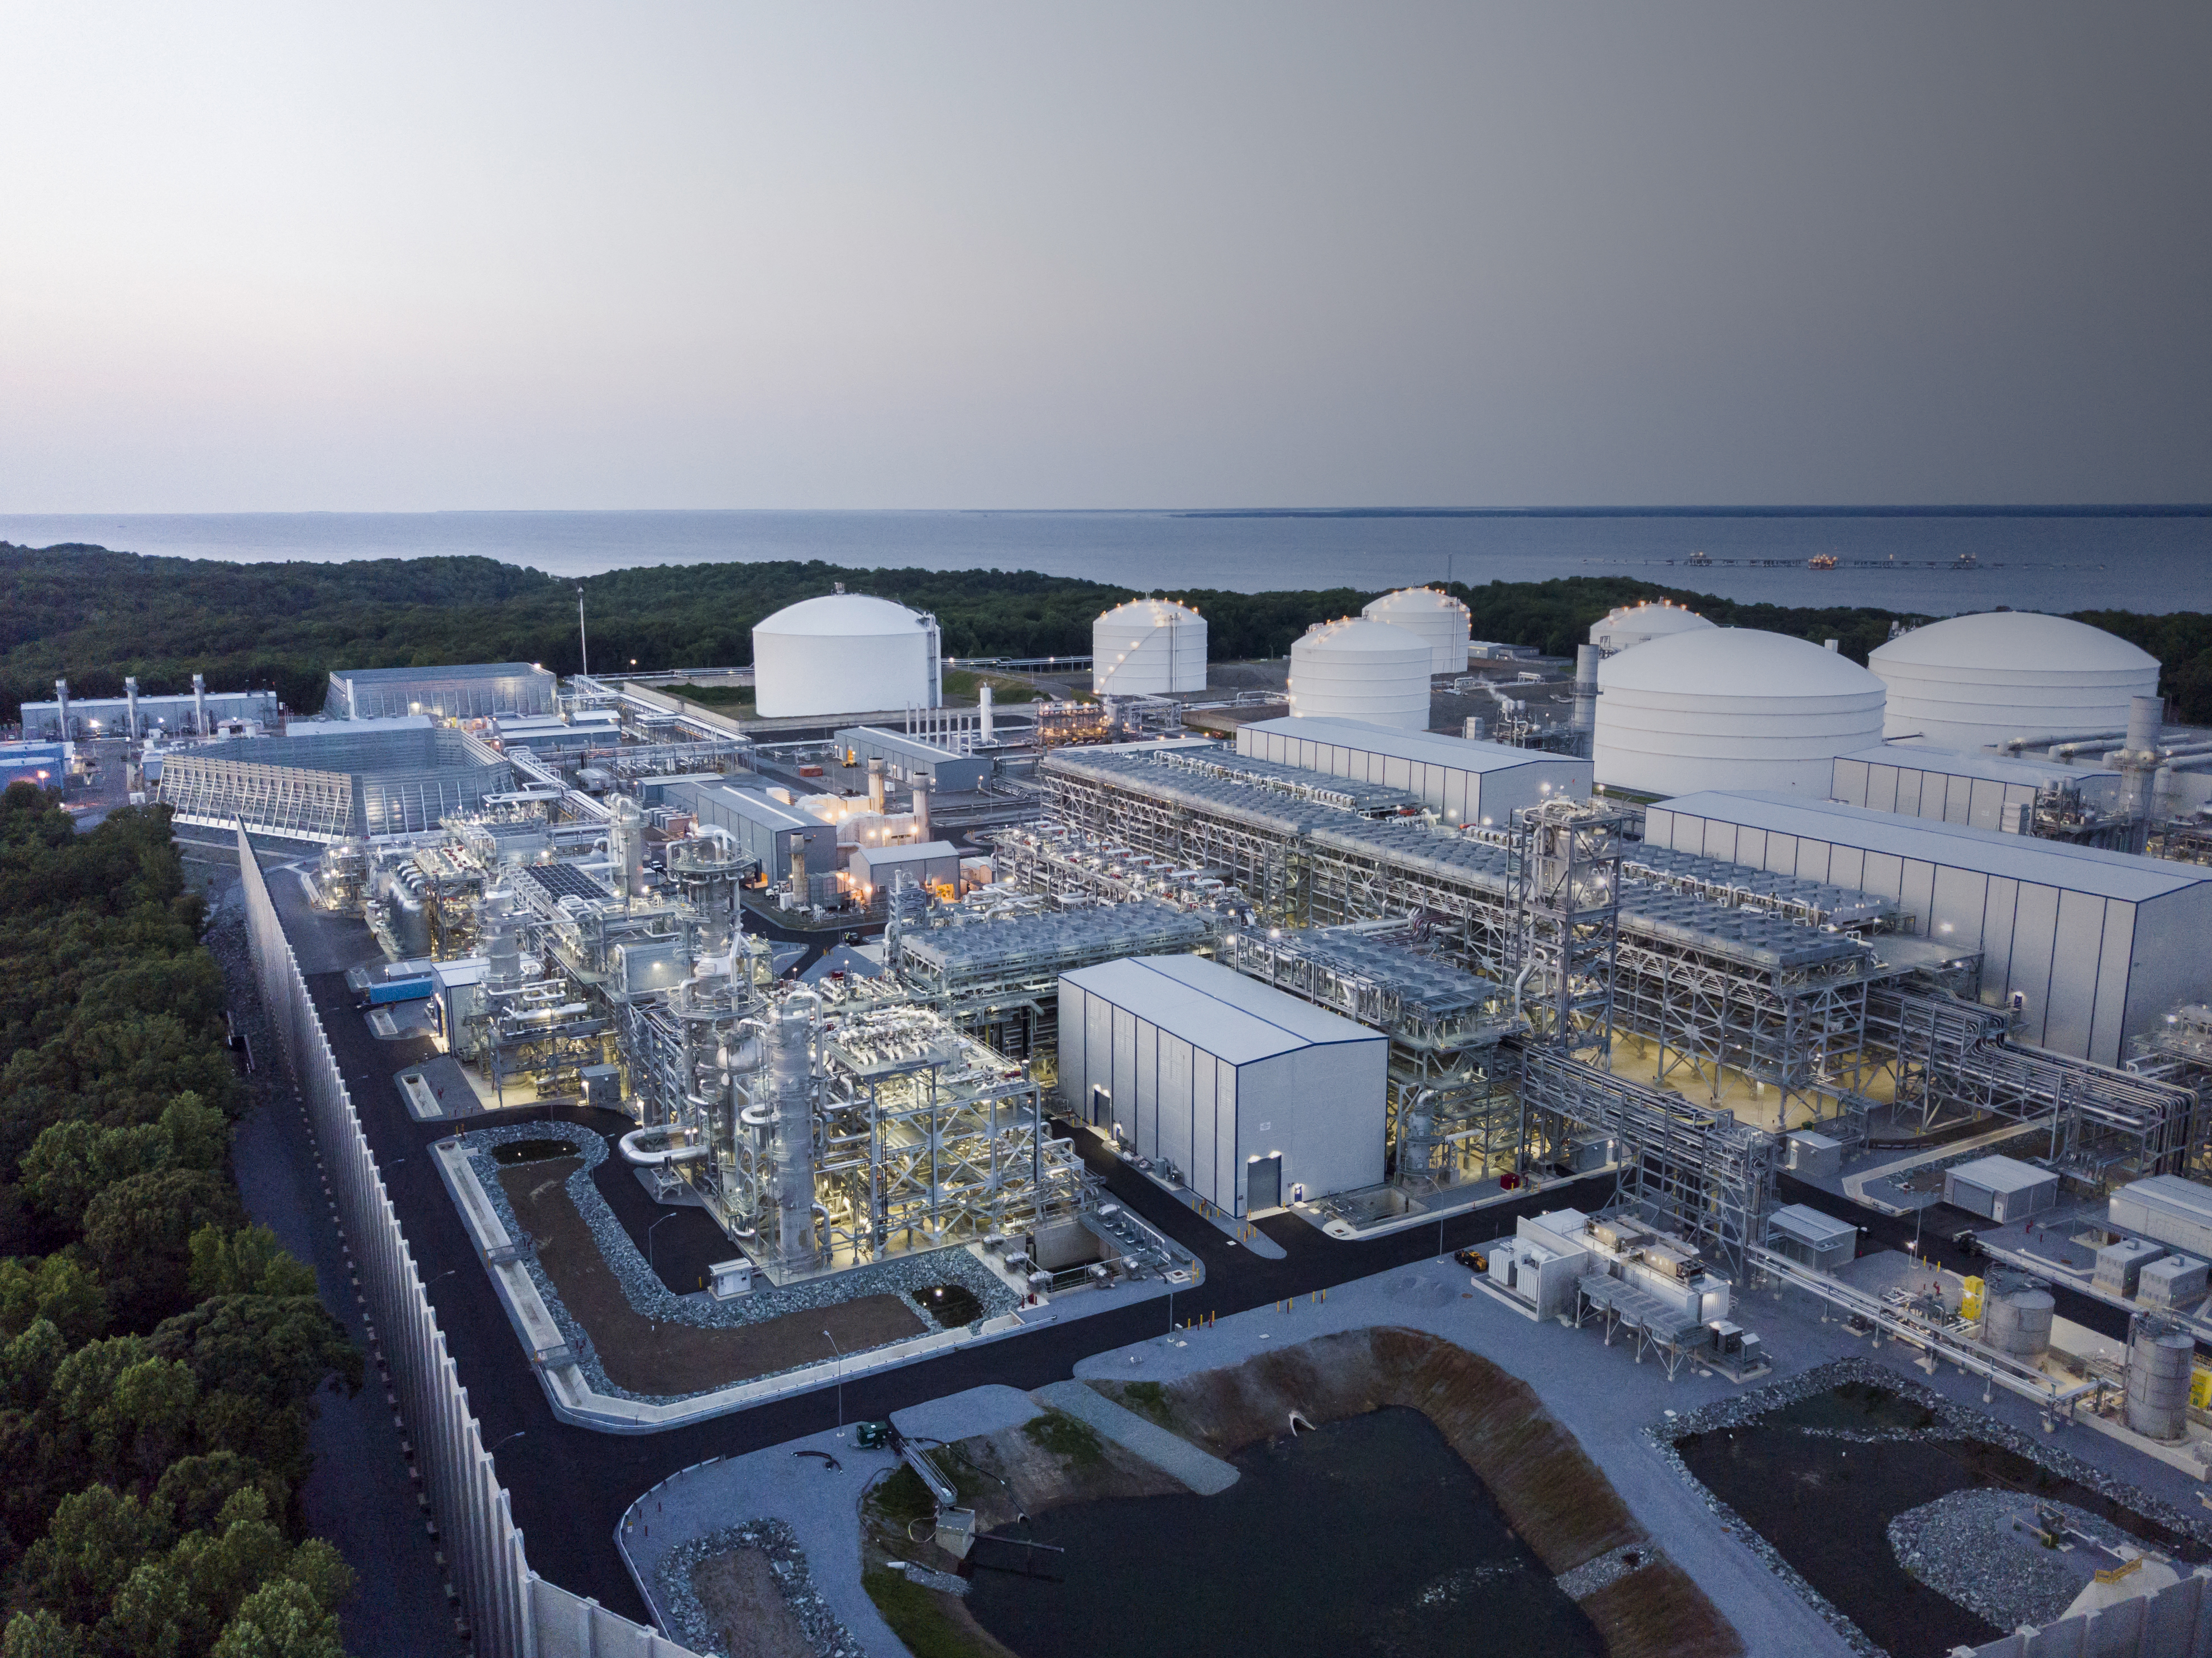 Dominion Energy's Cove Point liquefaction facility liquefies natural gas for export to countries such as India and Japan that use natural gas to power their economies and generate low-carbon electricity. (Source: Kiewit)